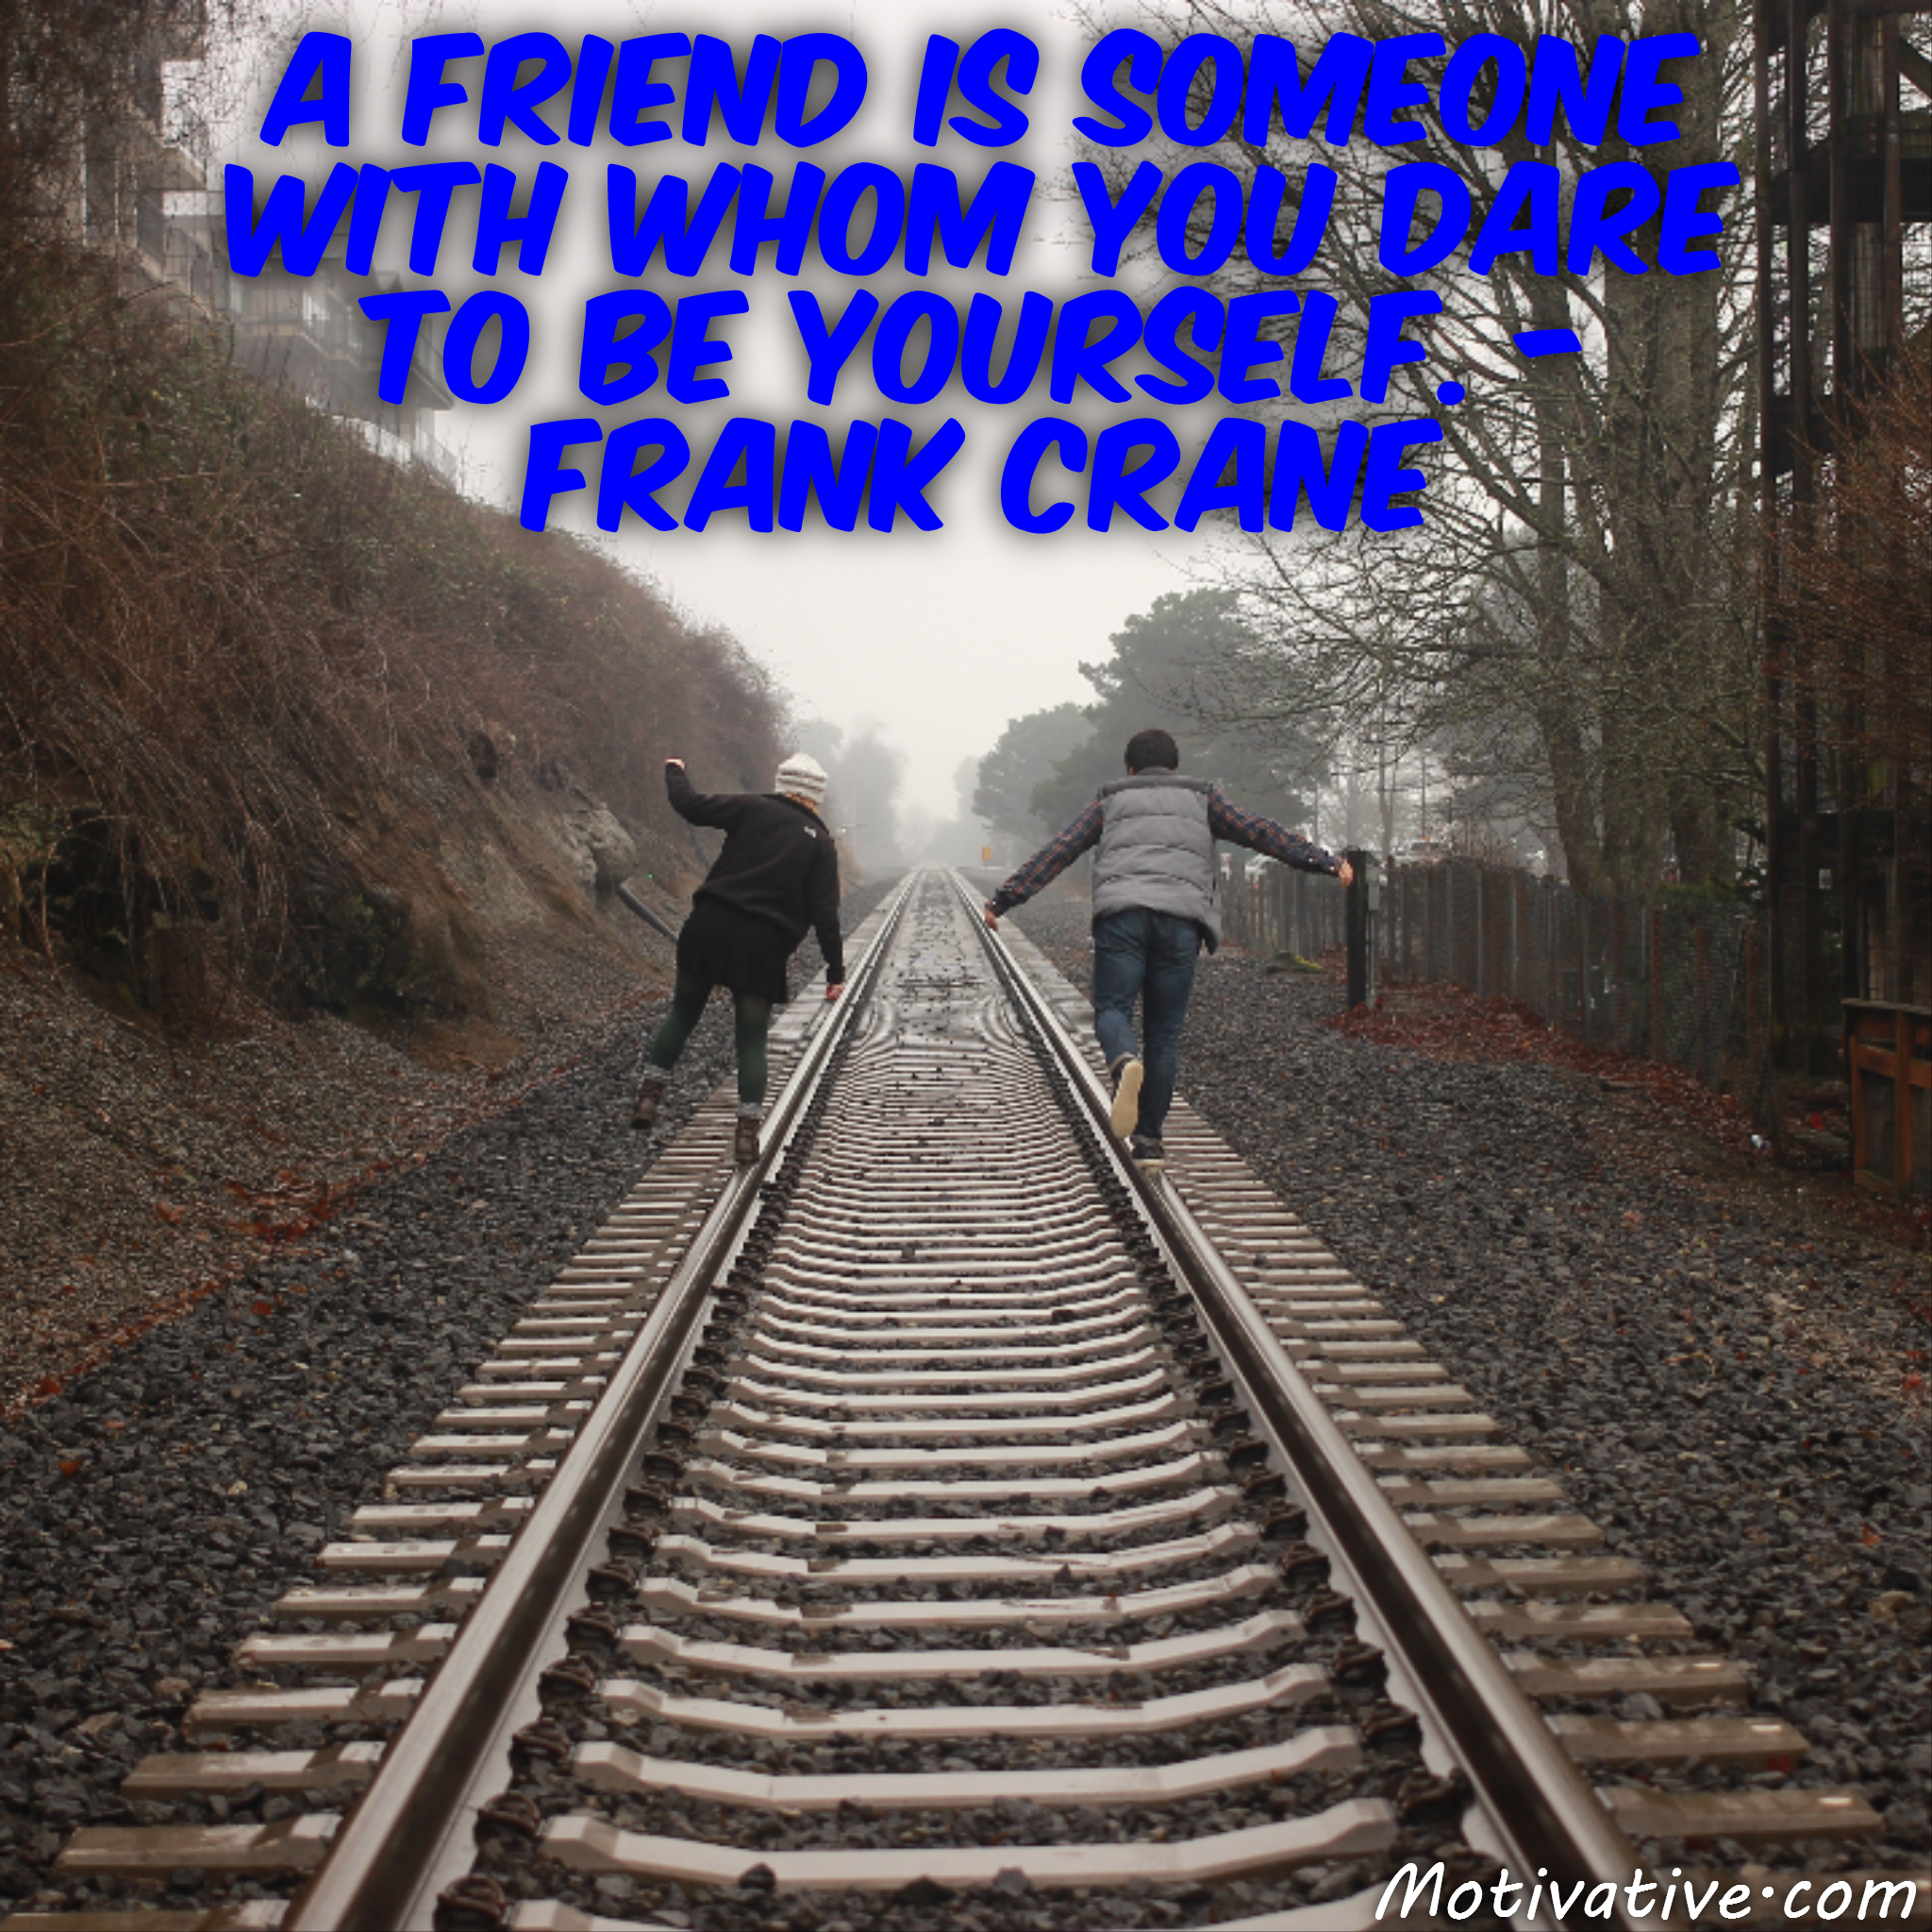 A friend is someone with whom you dare to be yourself. – Frank Crane